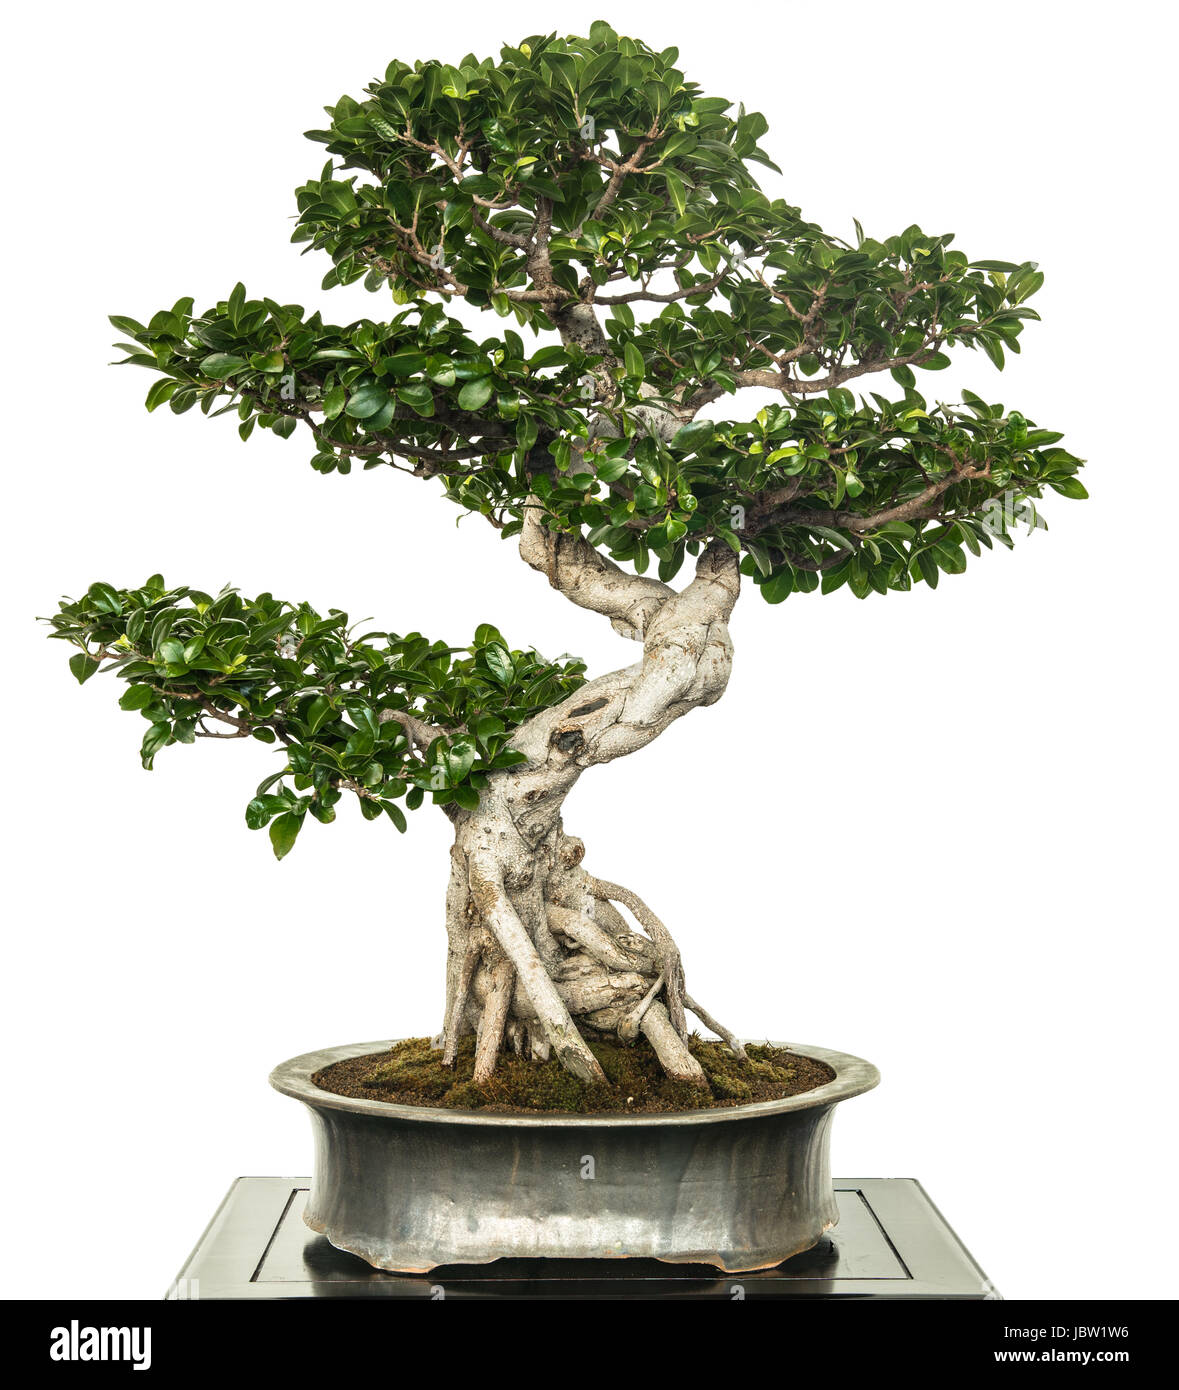 Ginseng Baum Feige Ficus Microcarpa Als Bonsai Baum Stock Photo